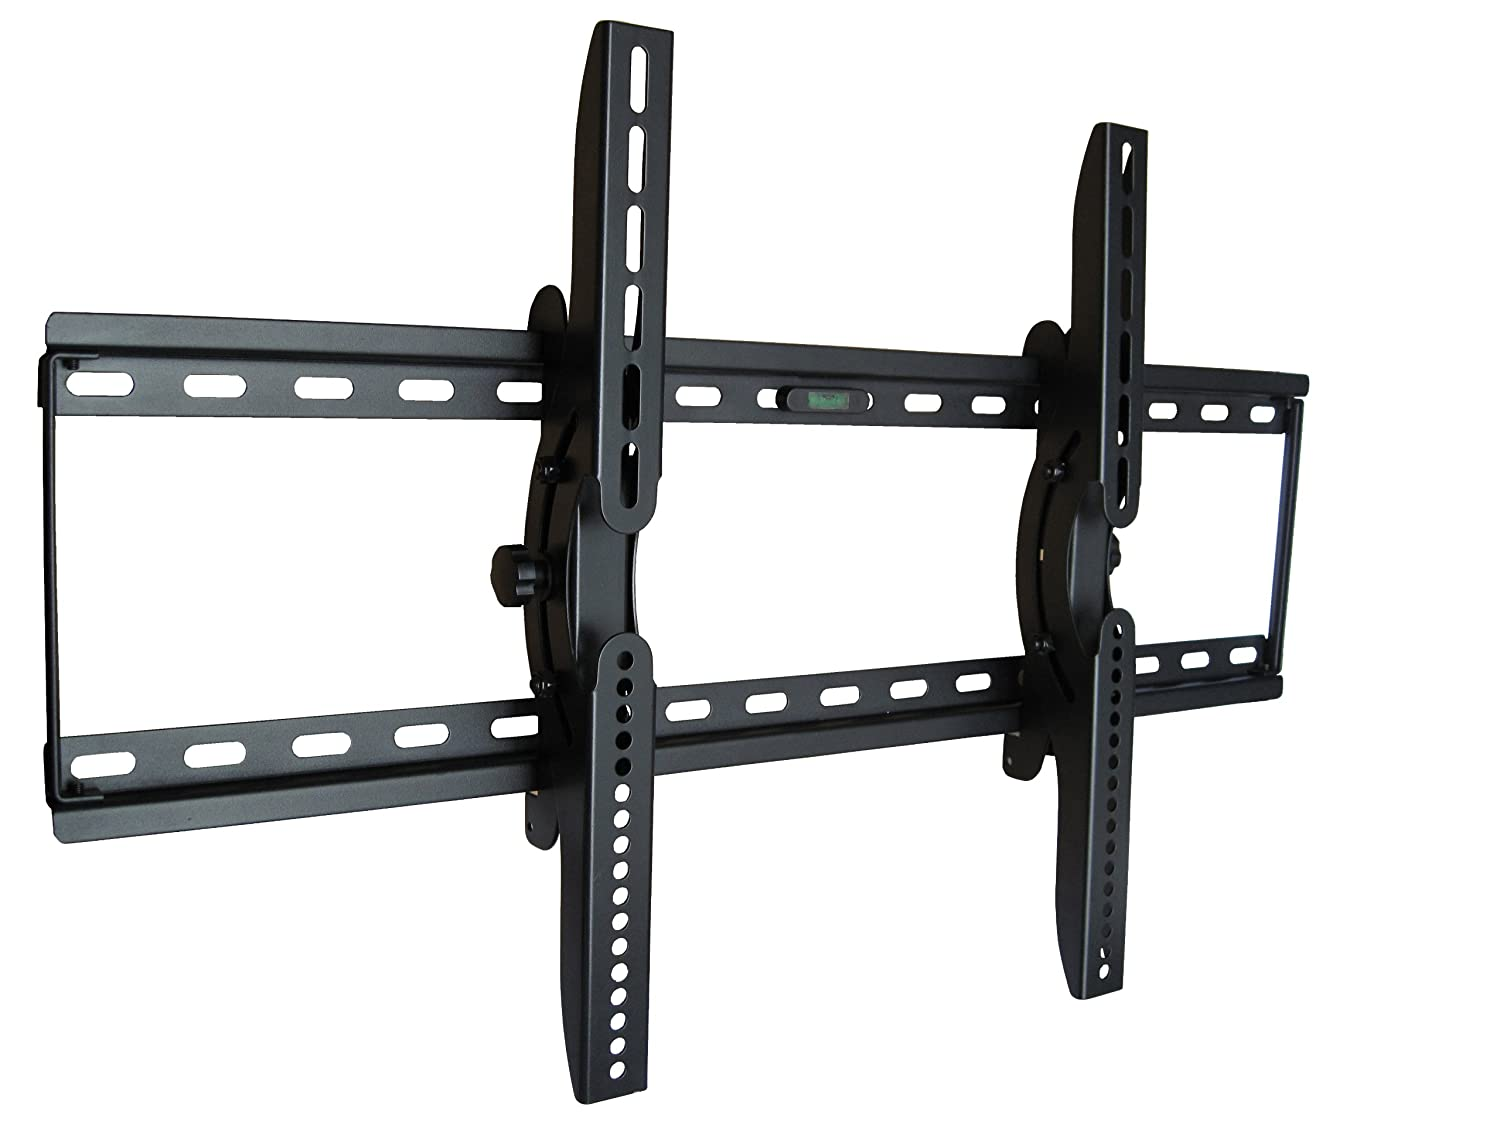 Amazon.com: Easy Tilt (Up + Down) Mount for Tv Screen Sizes 32-80